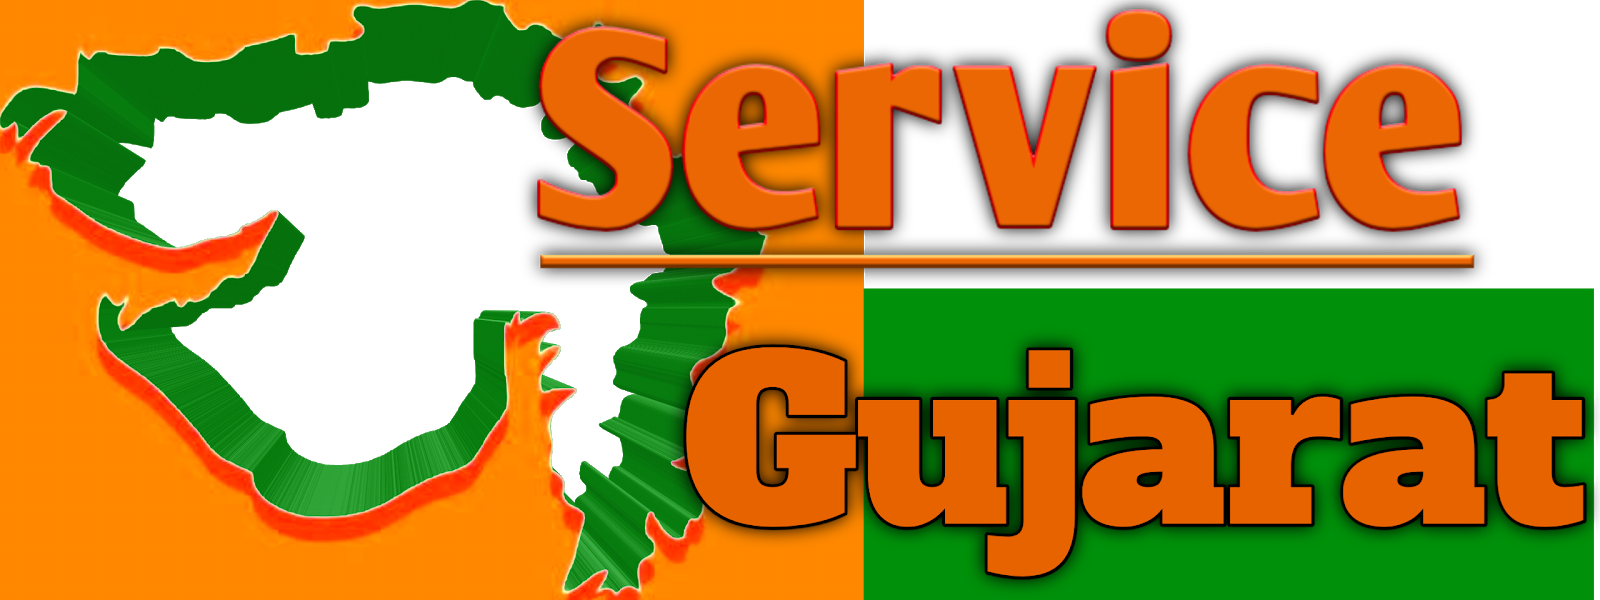 Service Gujarat :: Official